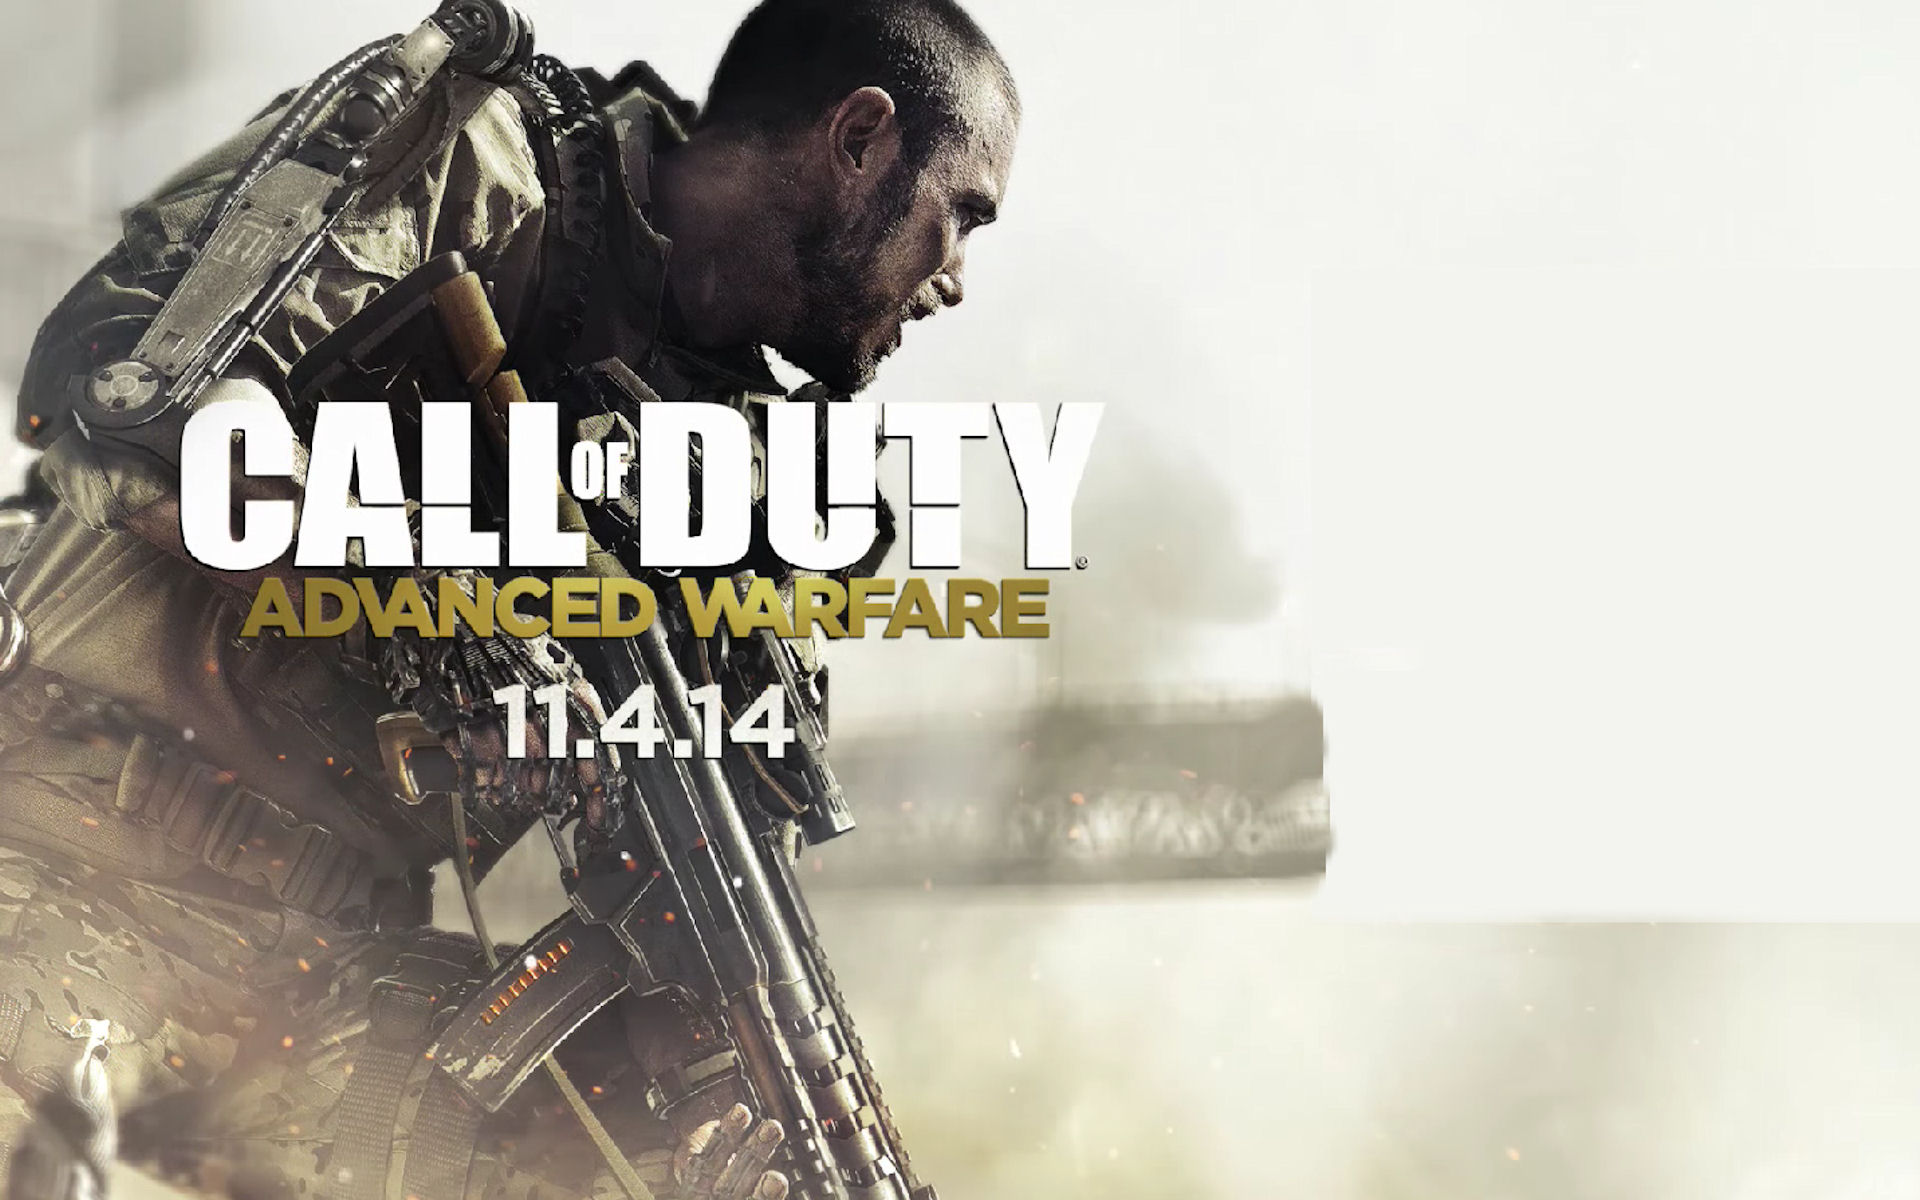 Call of Duty: Advanced Warfare Soldier Wallpaper